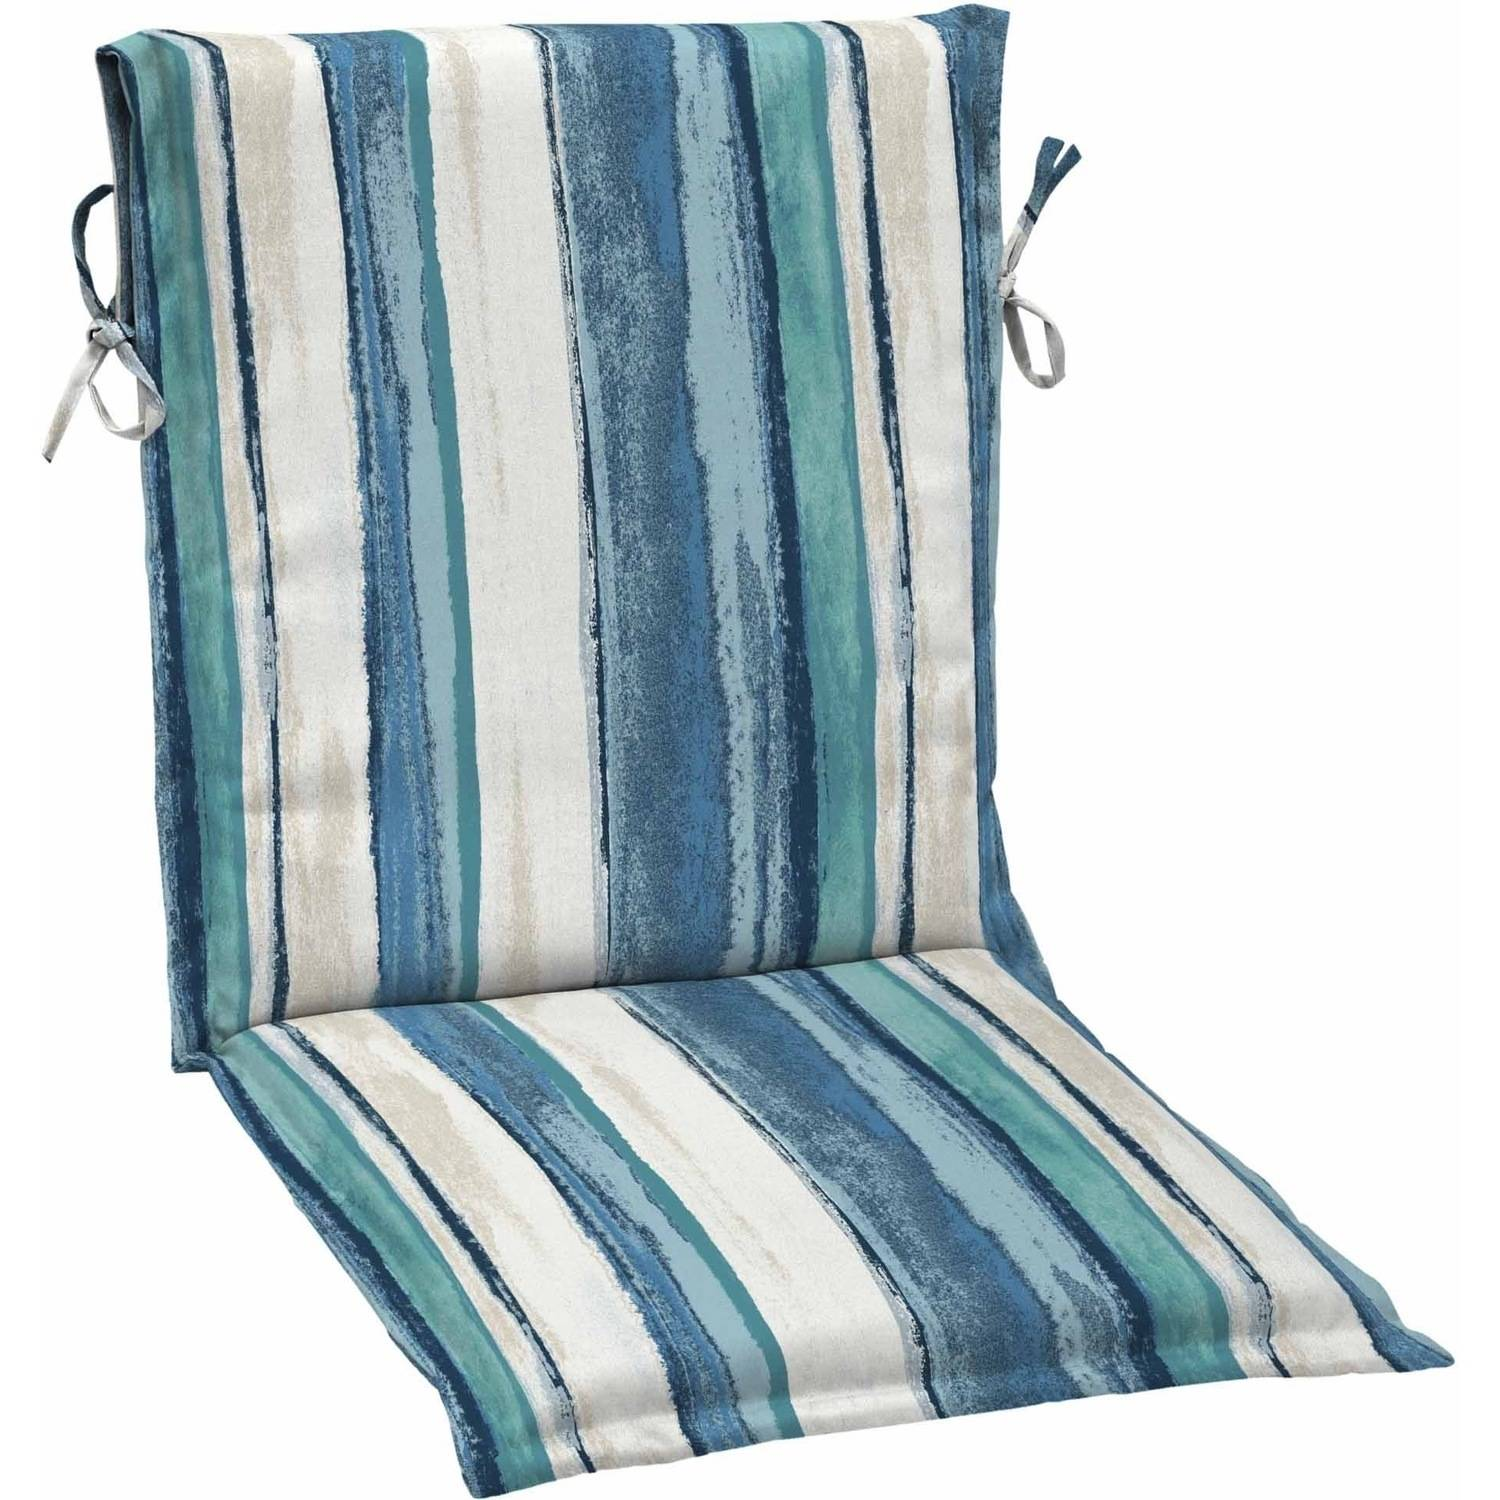 Great Mainstays Outdoor Patio Sling Chair Cushion, Multiple Patterns